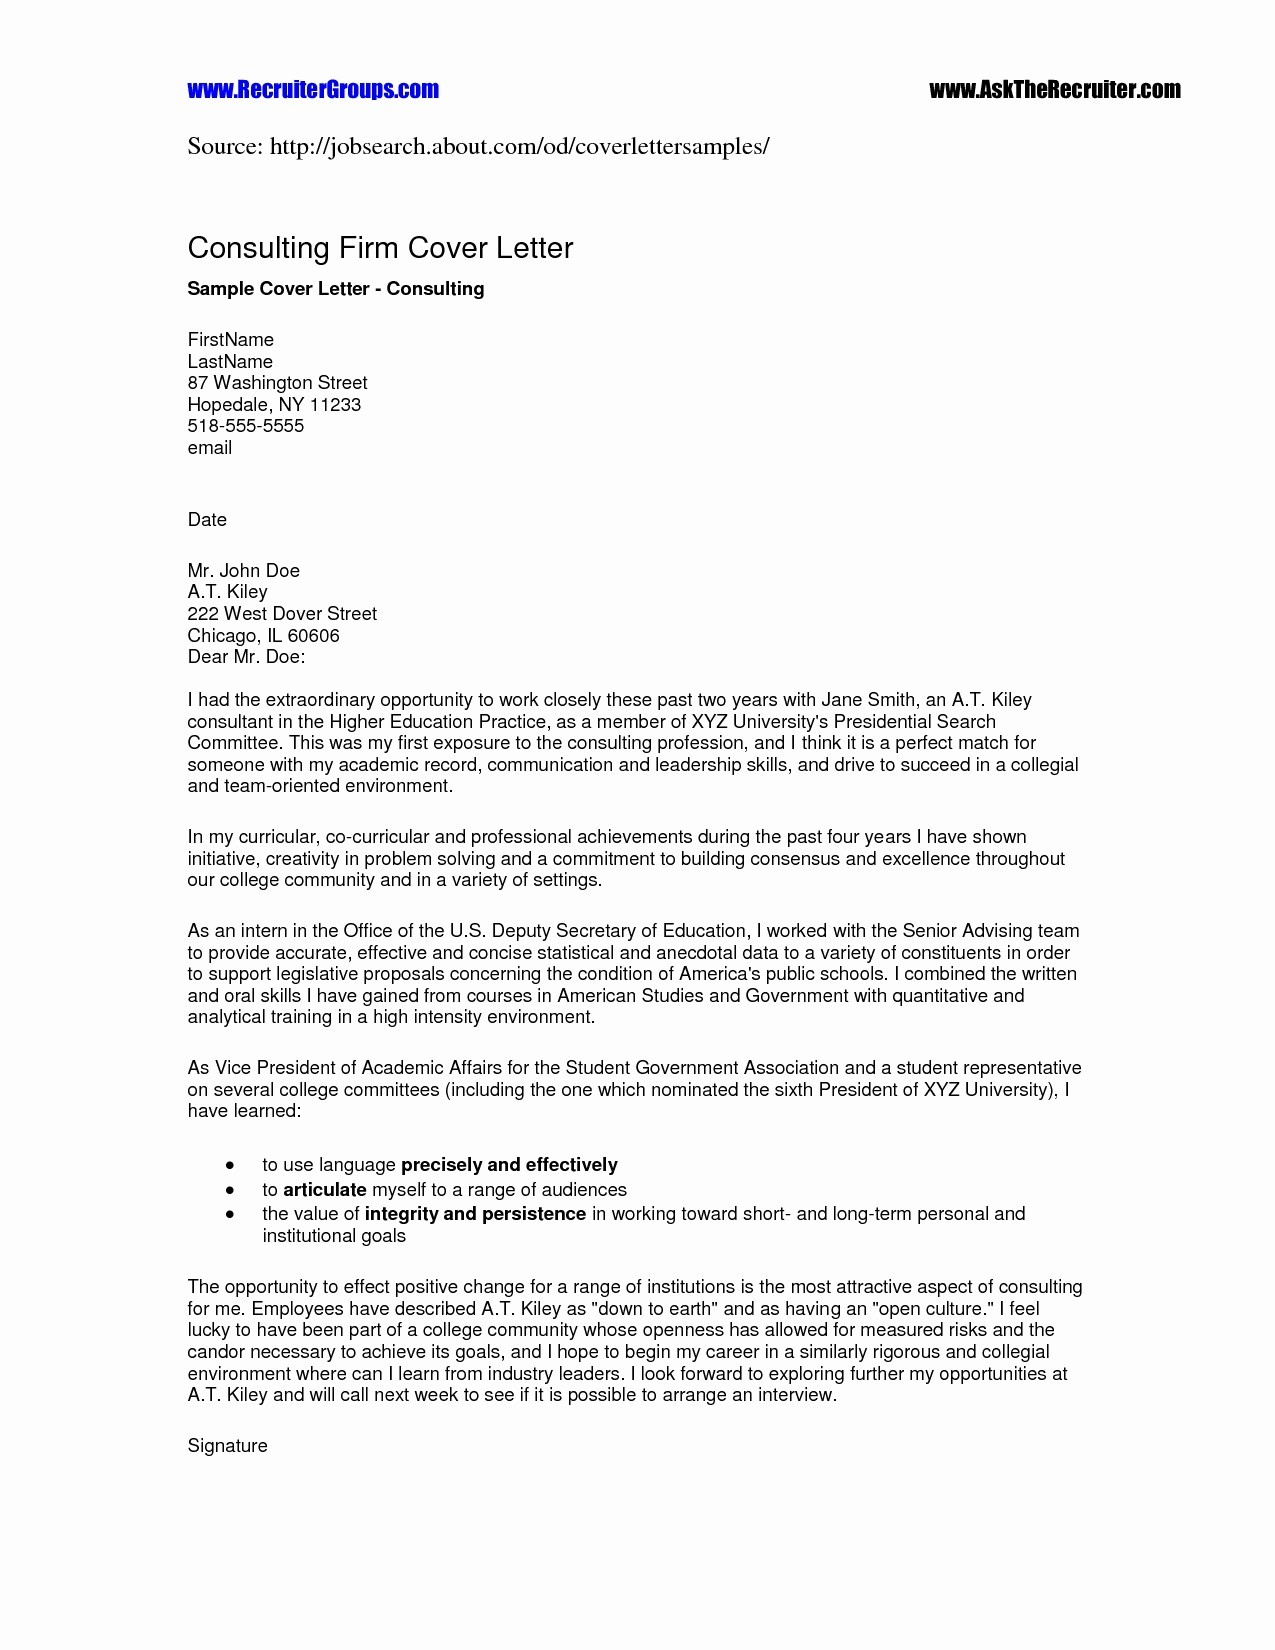 Reference Letter Template Word - Sample Cover Letter for Good Conduct Certificate Fresh Reference